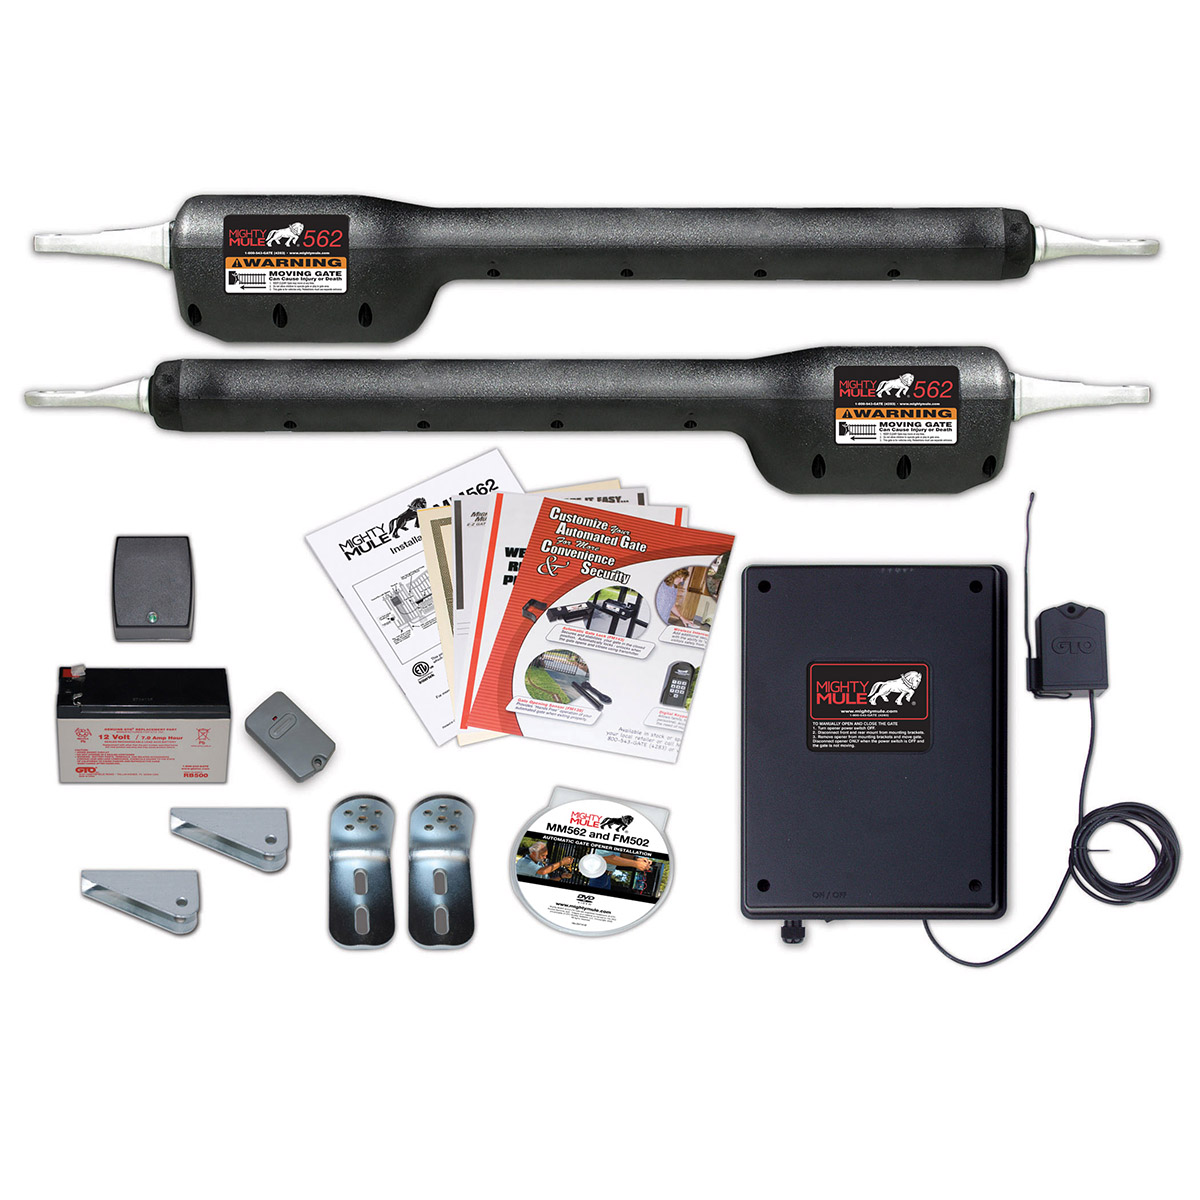 Automatic gate openers driveway accessories